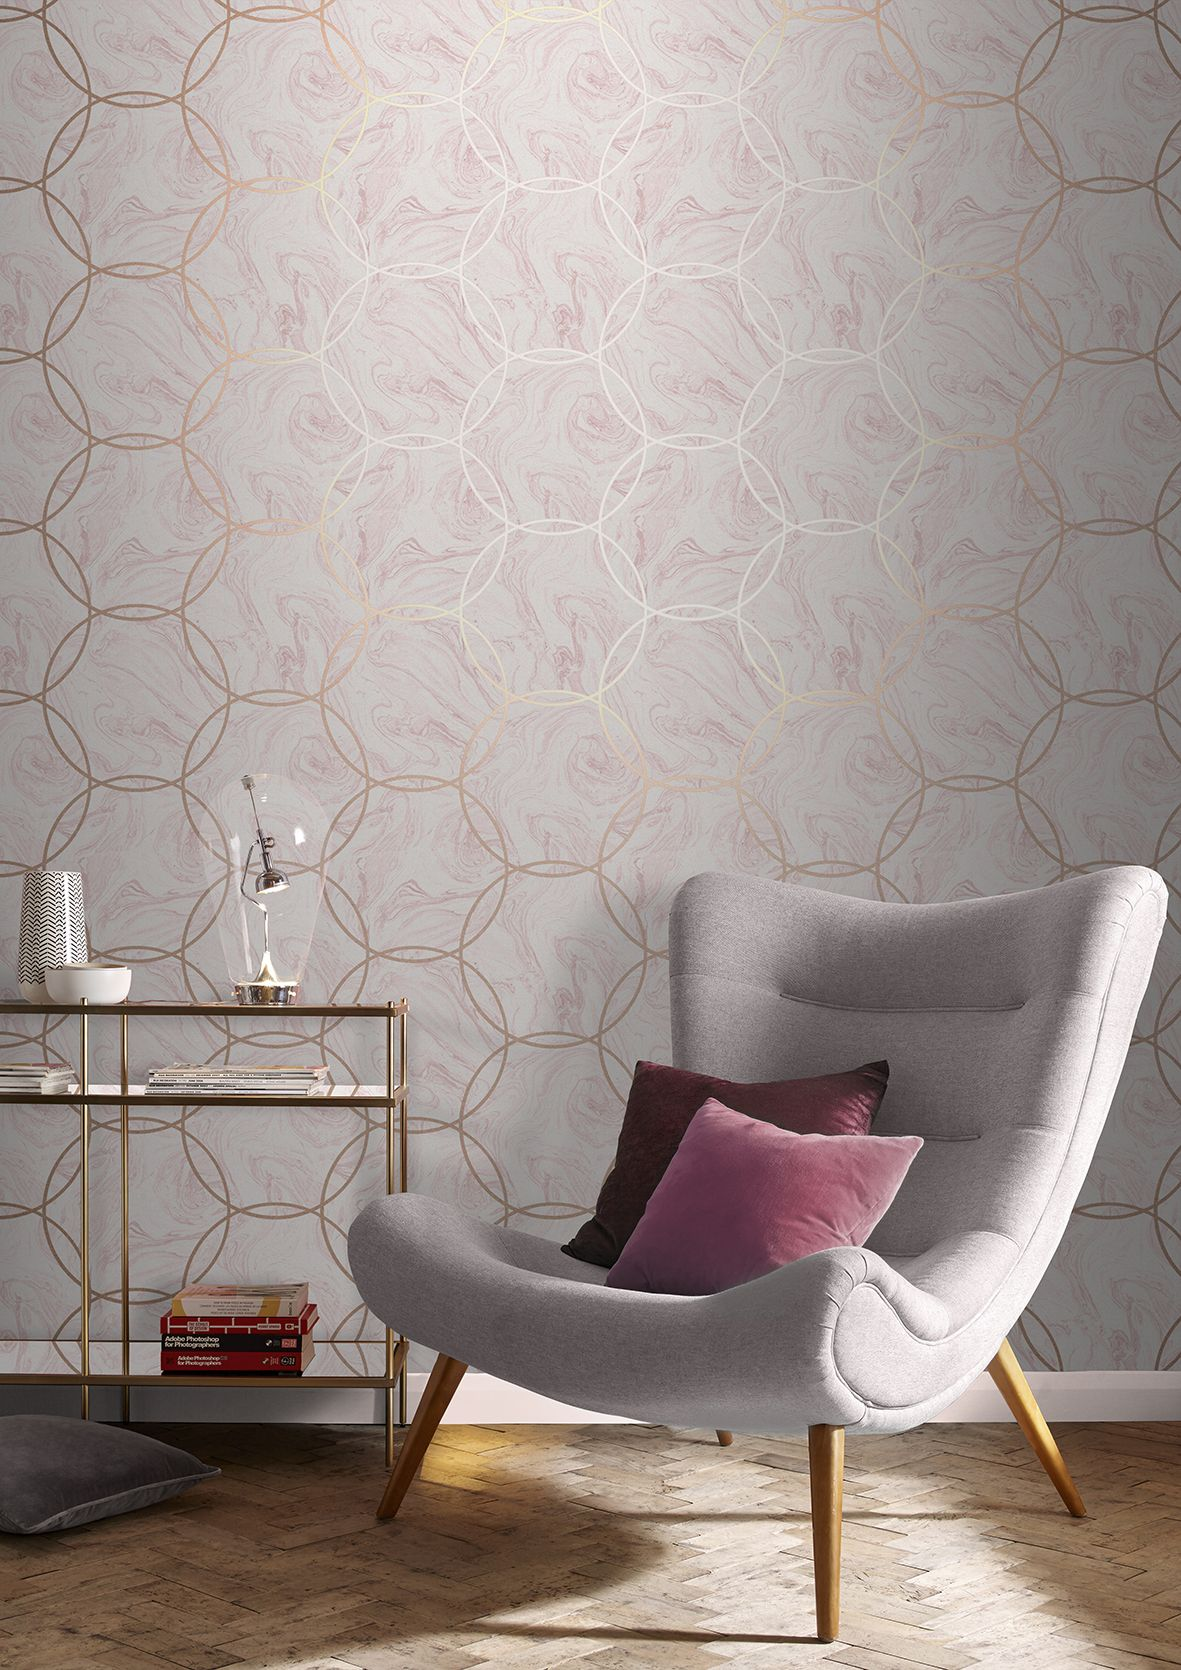 Marrying Stunning Blush Pink Marble With Rose Gold Geometric Circles Aqueous Wallpaper Bedroom Feature Wall Feature Wallpaper Living Room Girls Room Wallpaper